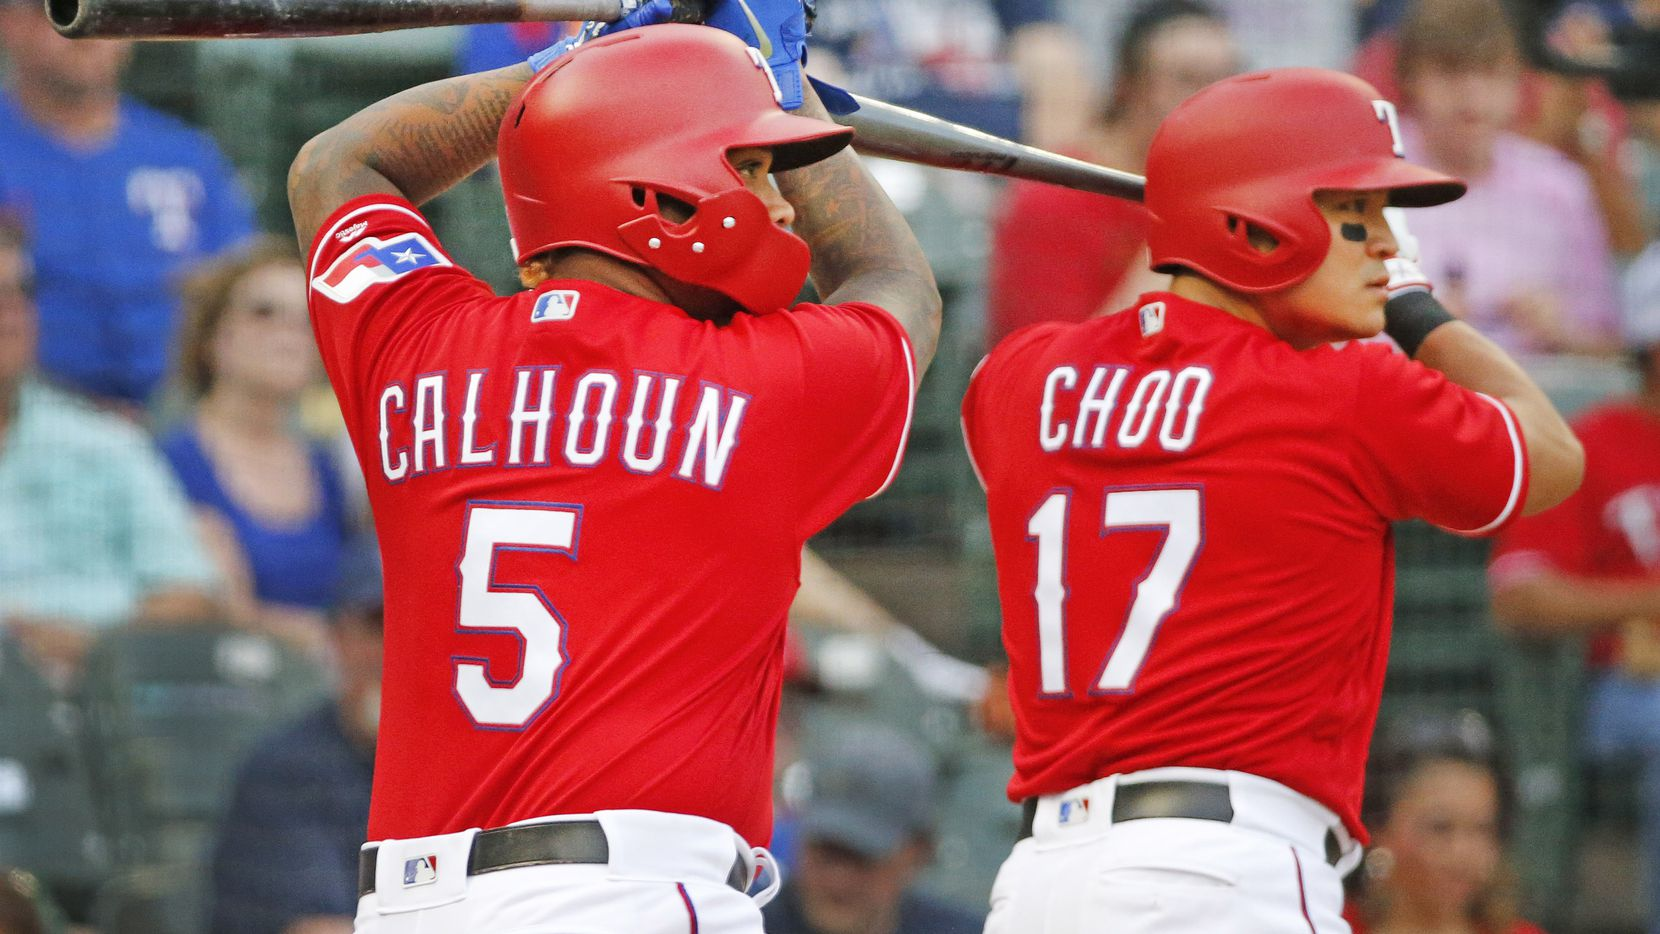 Shin-Soo Choo has dealt with what Wille Calhoun is going through right now. He had some advice for the youngster.